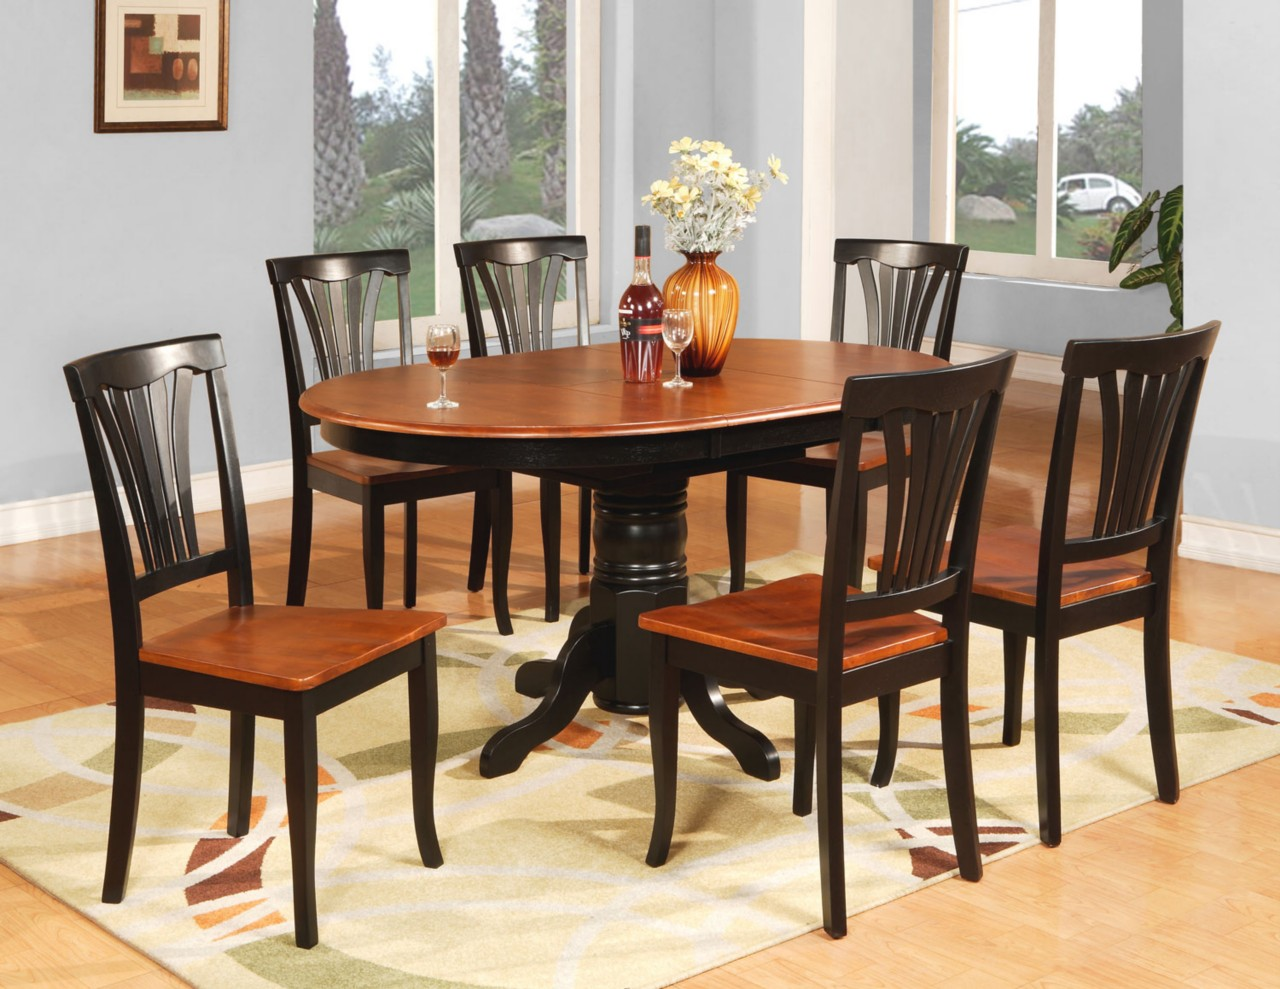 7 pc oval dinette kitchen dining room table 6 chairs ebay for Dining room table and 8 chairs